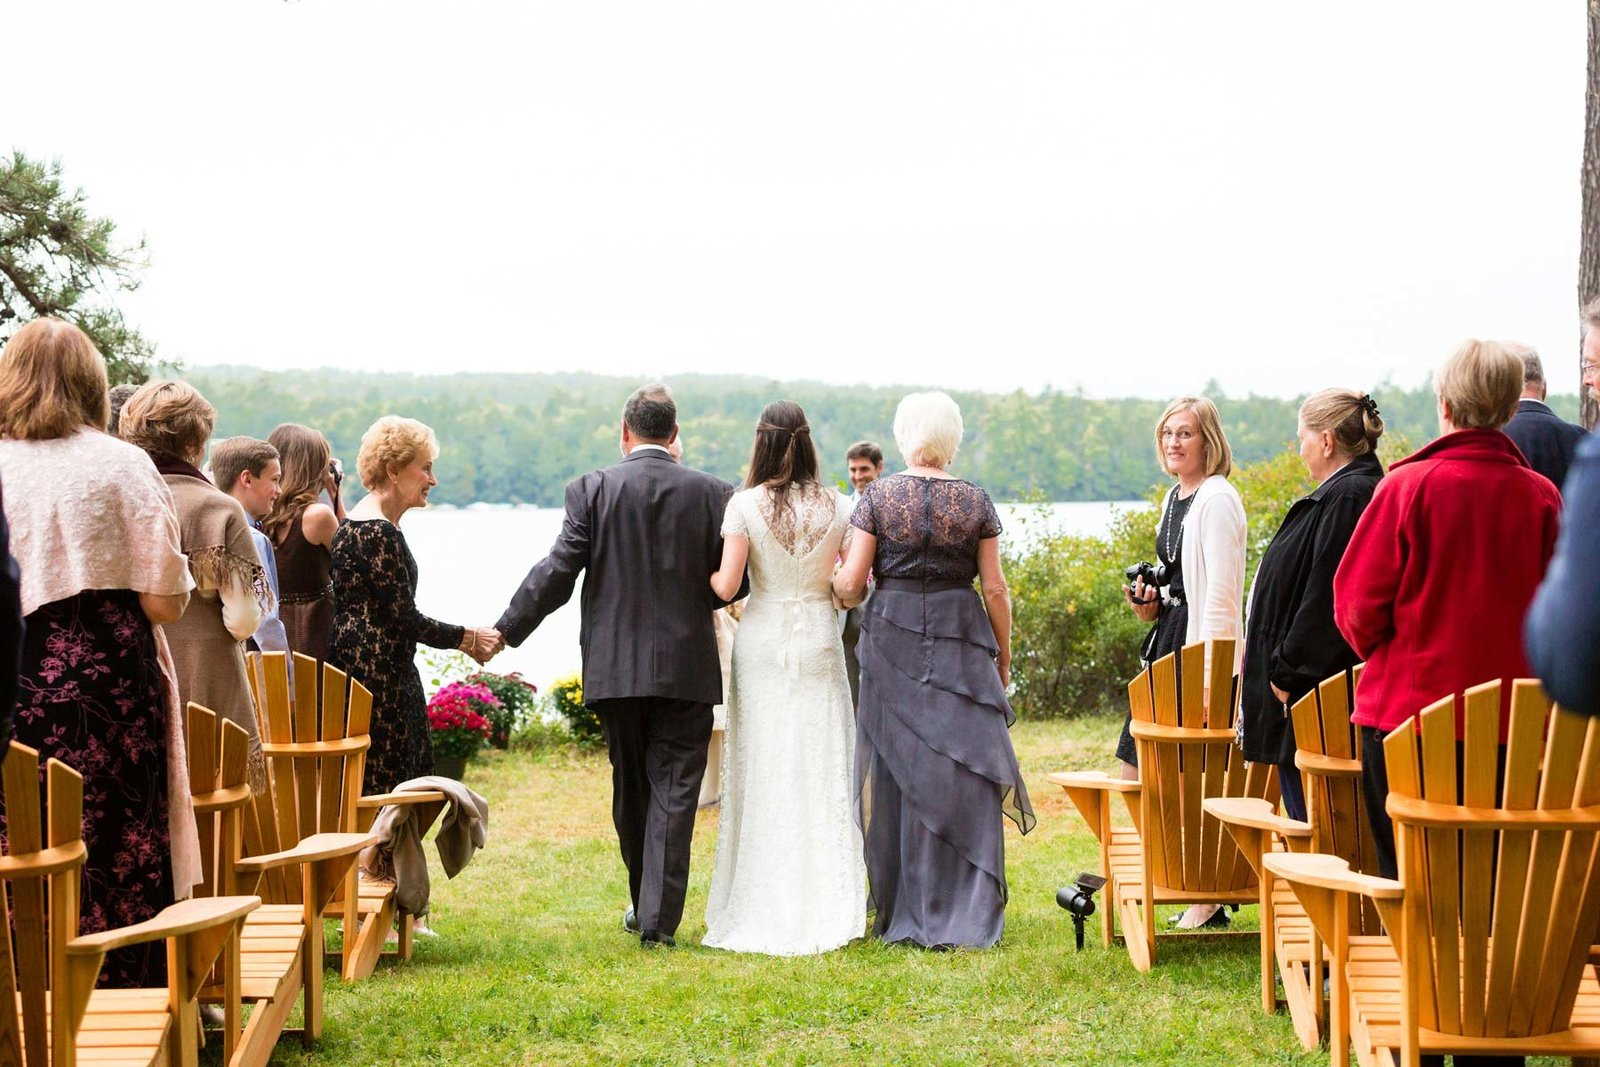 Bridgton Maine Wedding Photographers Ceremony Image I am Sarah V Photography